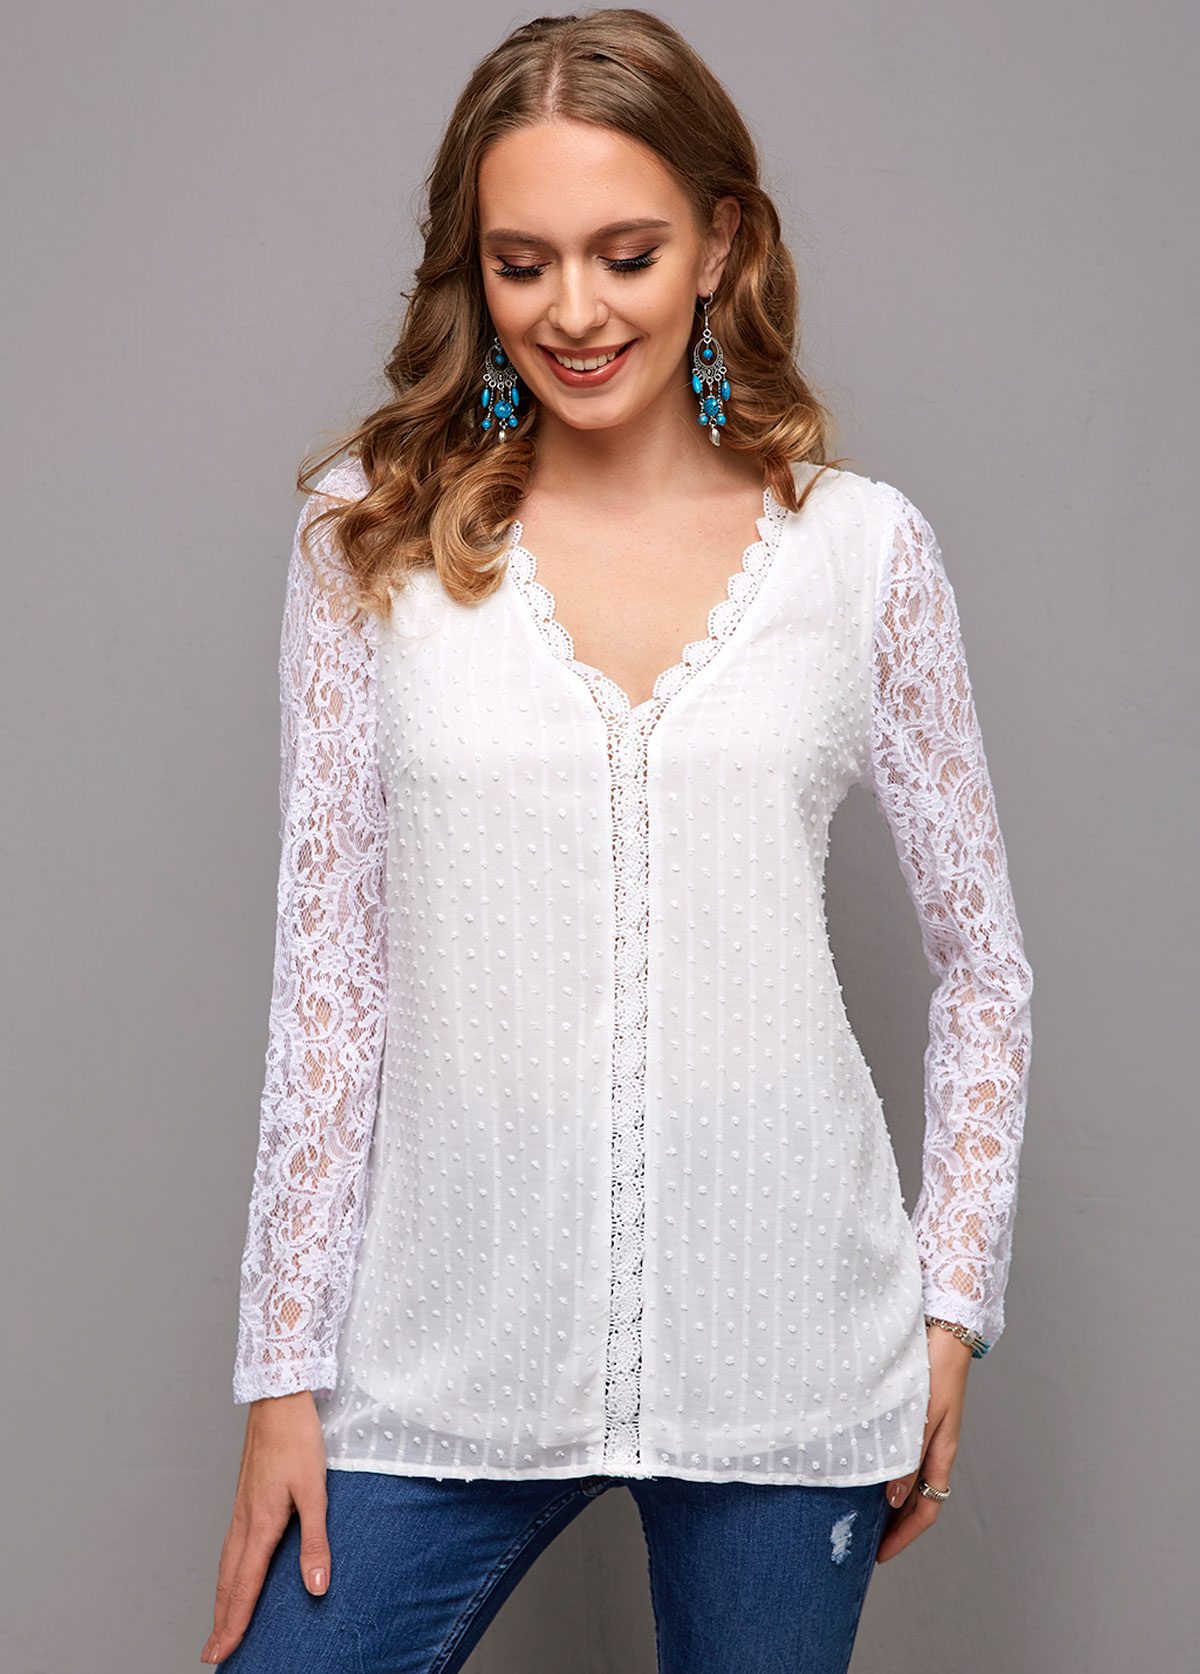 Long Sleeve Lace Stitching V Neck Blouse